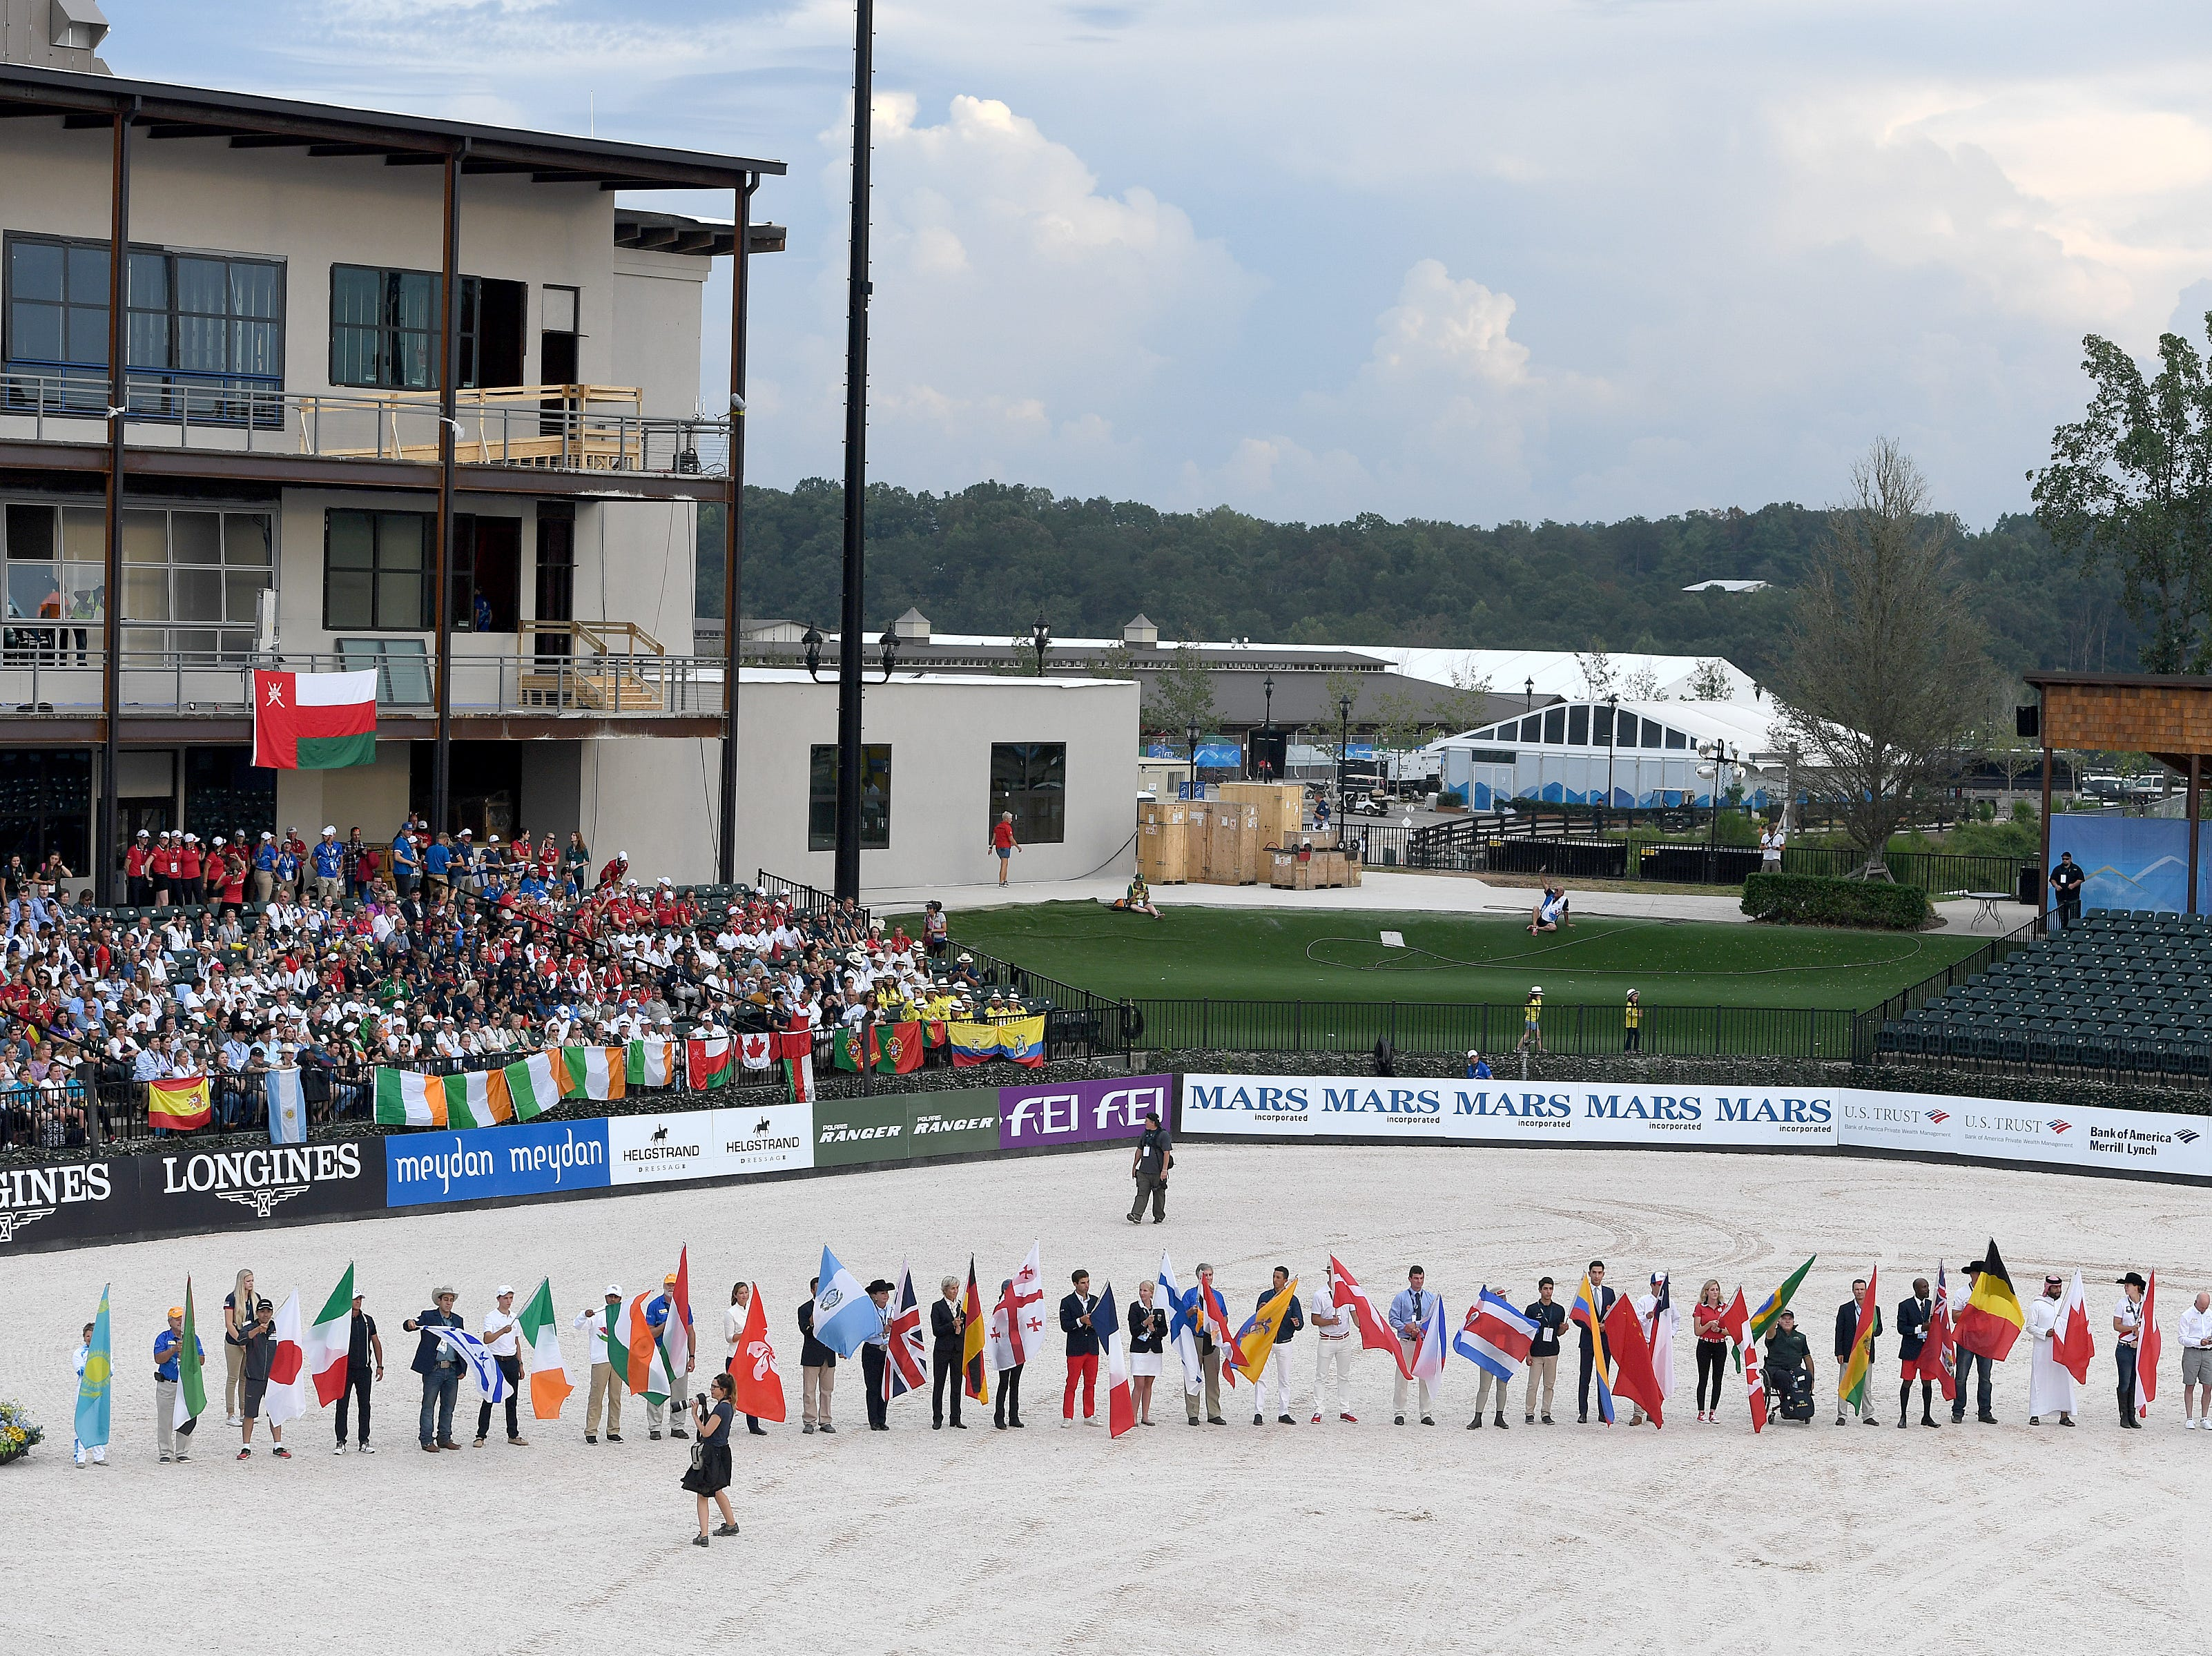 Athletes carried their country's flag in a parade of nations during the opening ceremony for the FEI World Equestrian Games at the Tryon International Equestrian Center on Sept. 11, 2018.